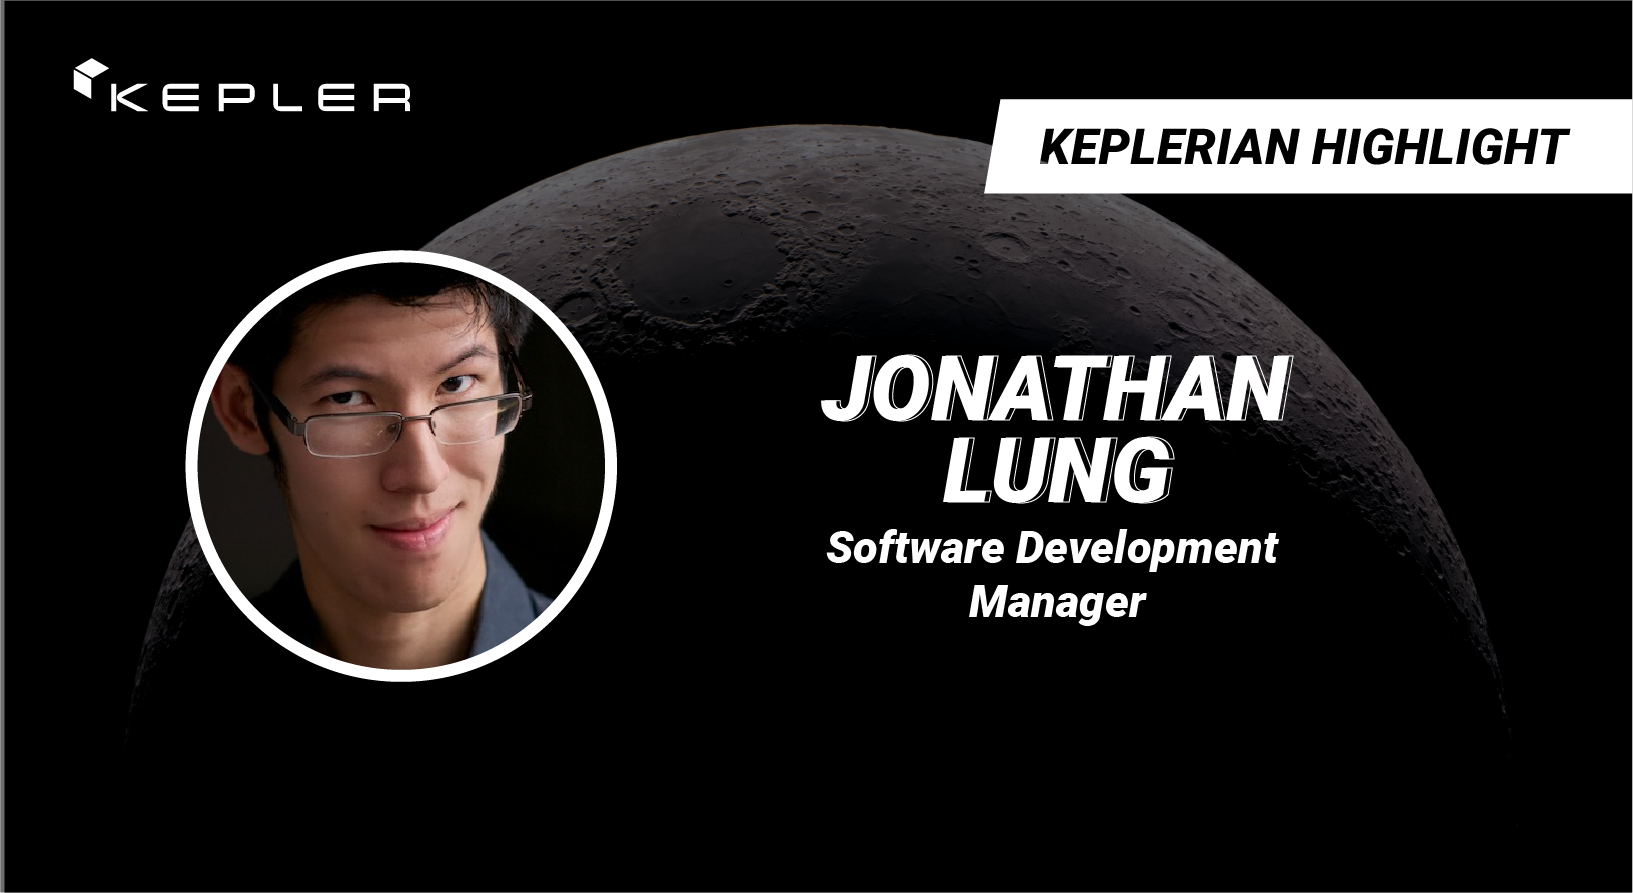 """Background image of the moon's surface with the Kepler logo and text reading """"Keplerian Highlight: Jonathan Lung, Software Development Manager"""""""